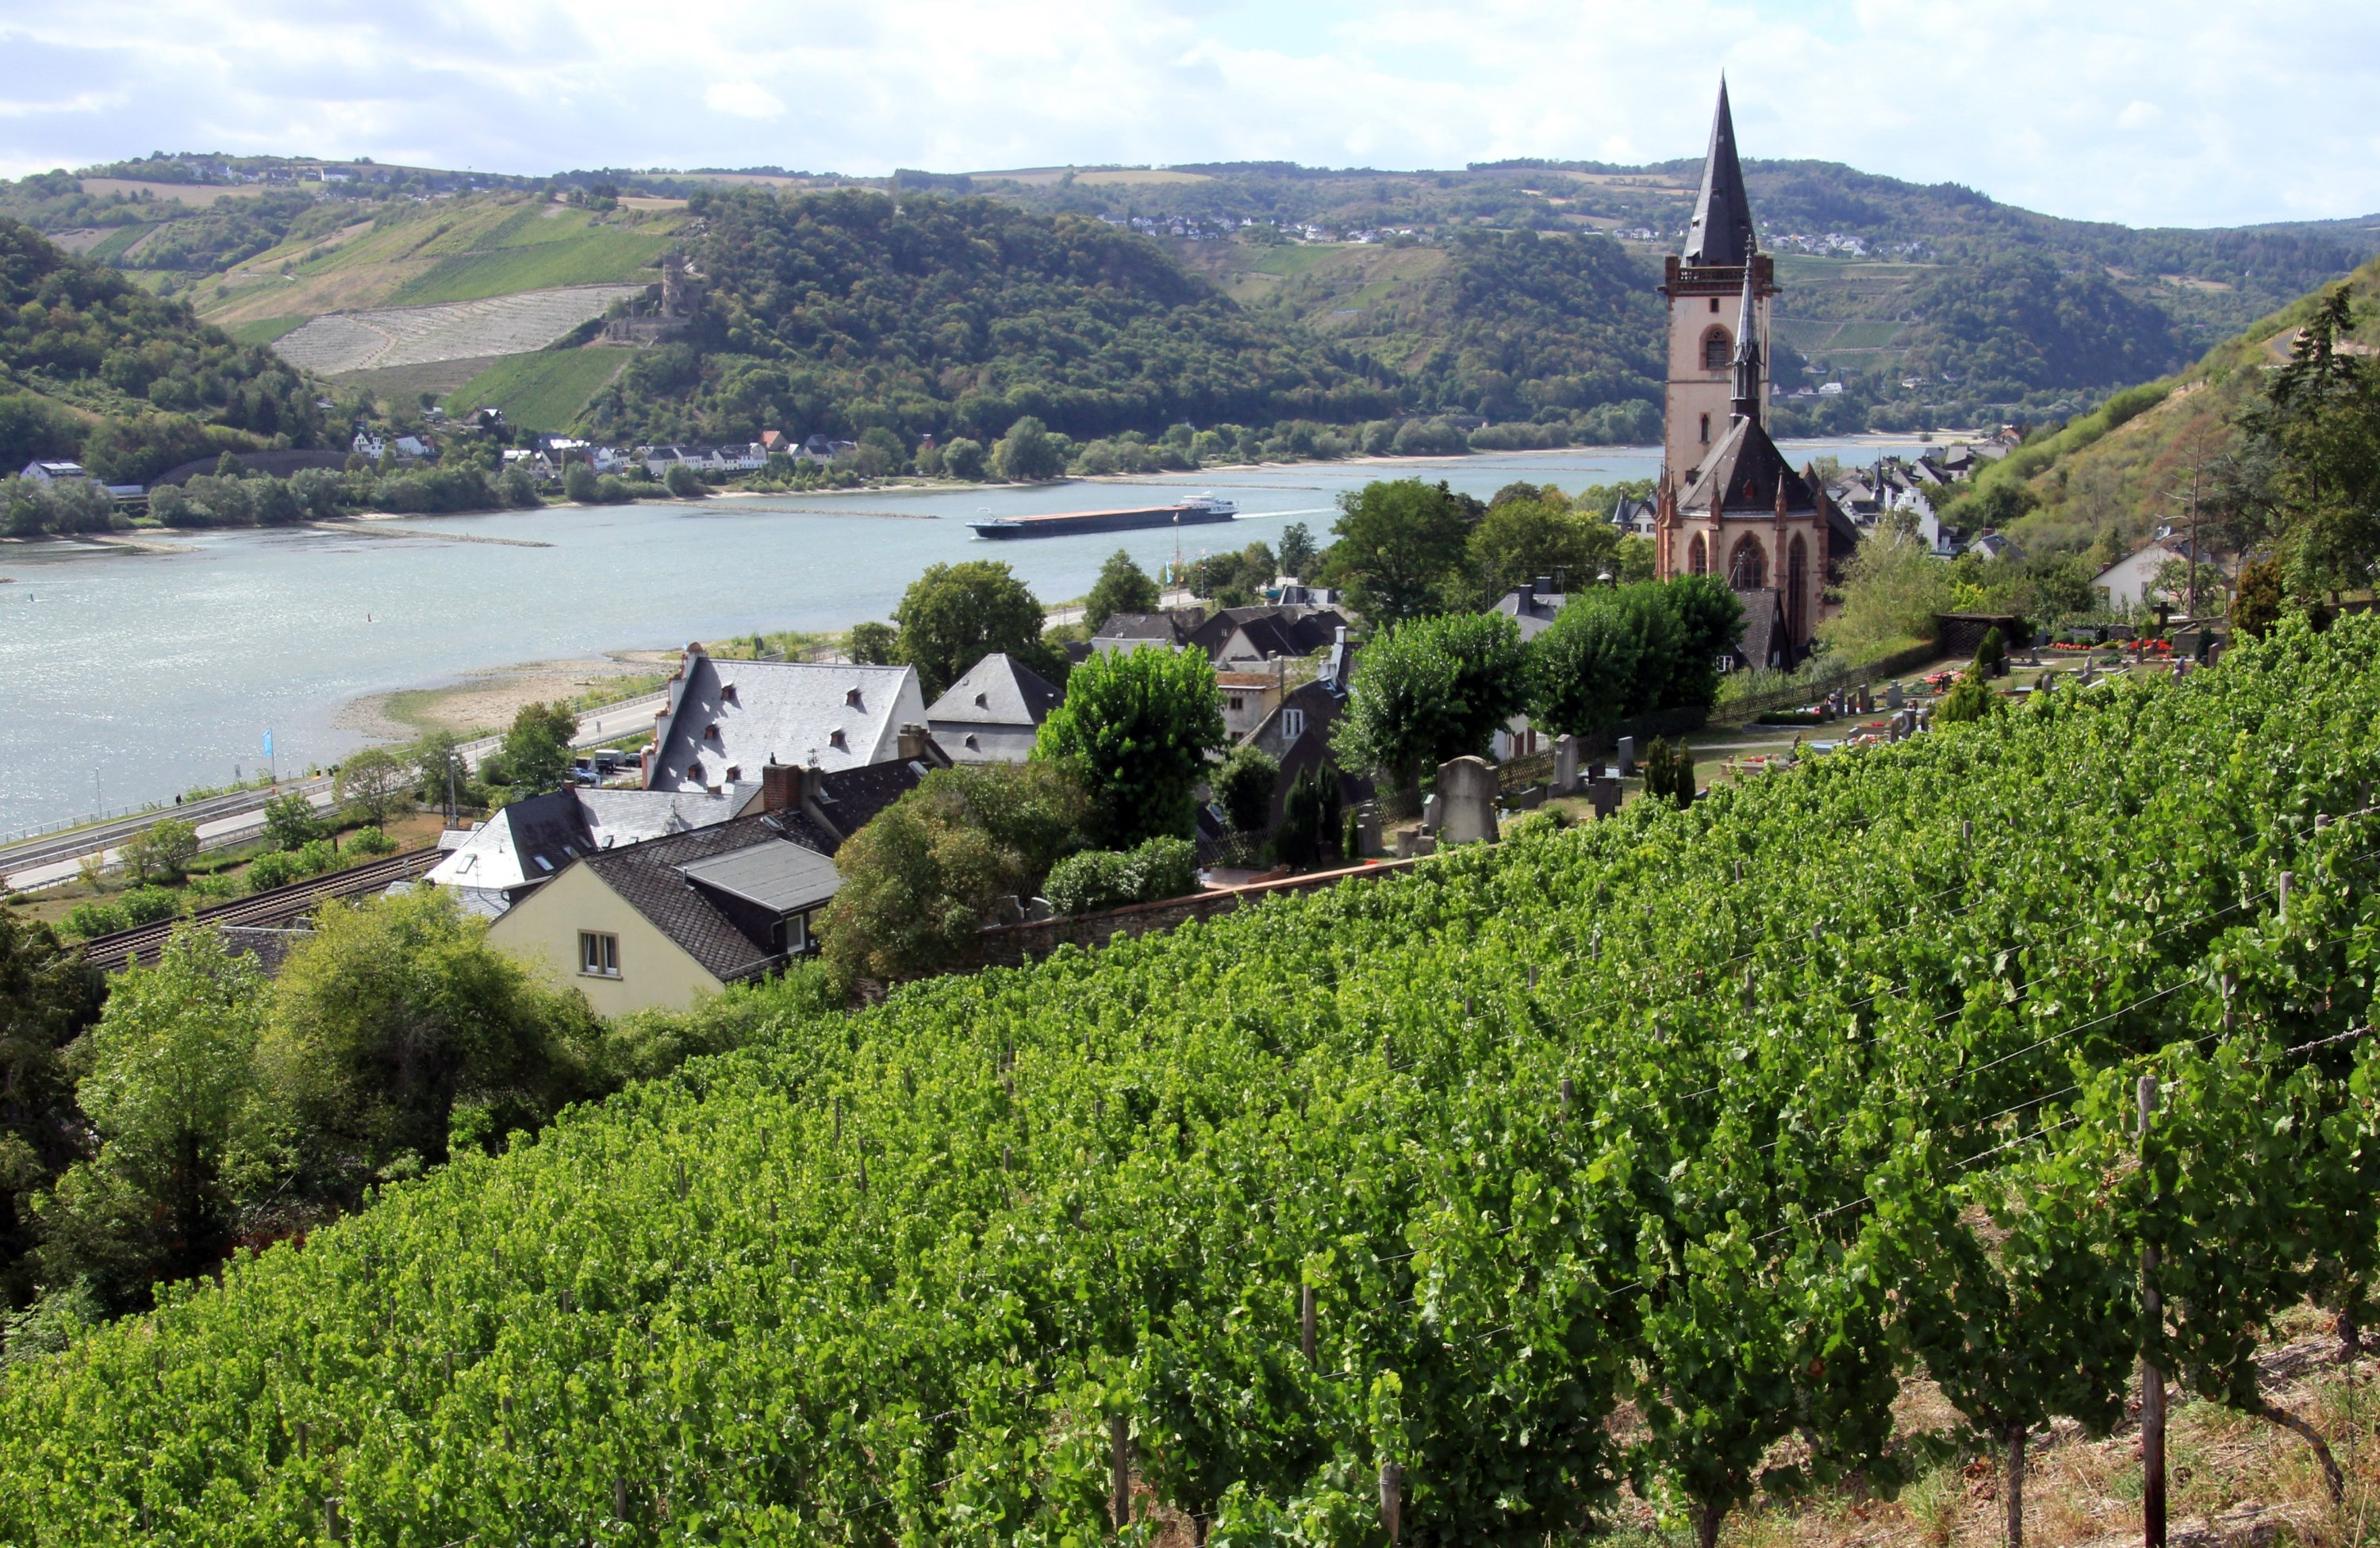 The wine village of Lorch am Rhein is a good starting point for exploring the Wisper valley in western Germany. (DPA Photo)